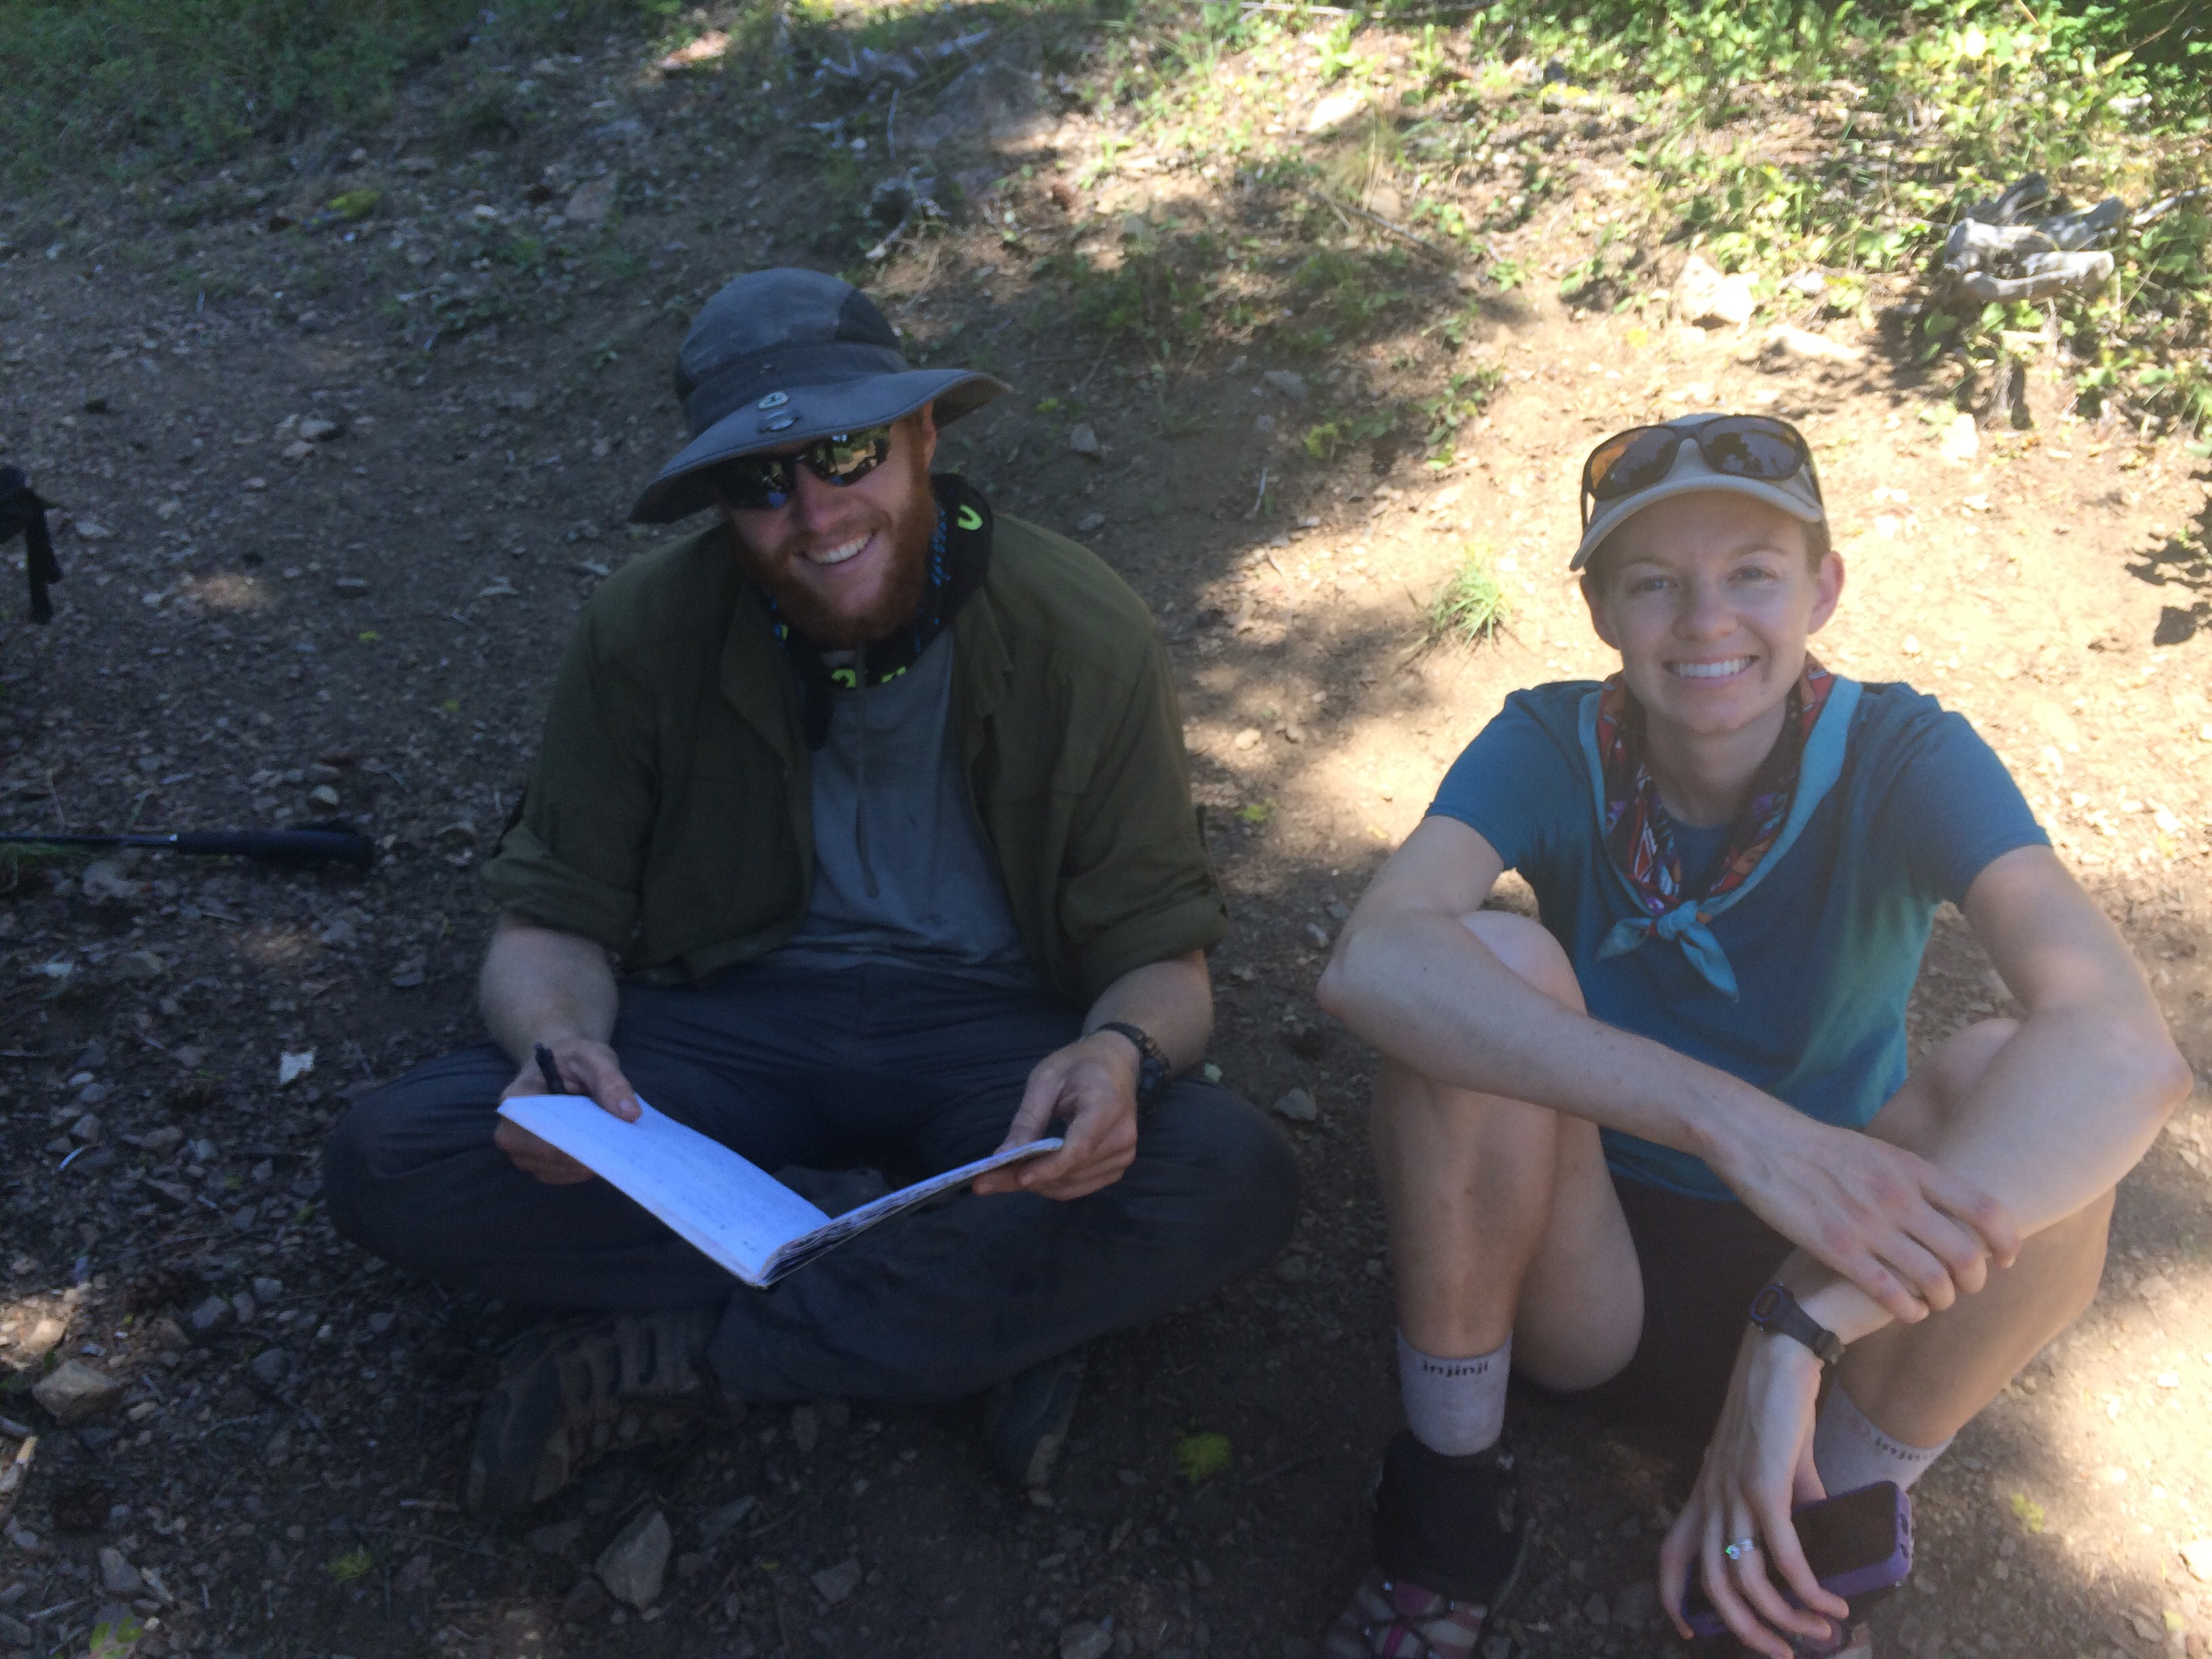 Smiles and Lizard reading some entries in the trail register at the CA/OR border.